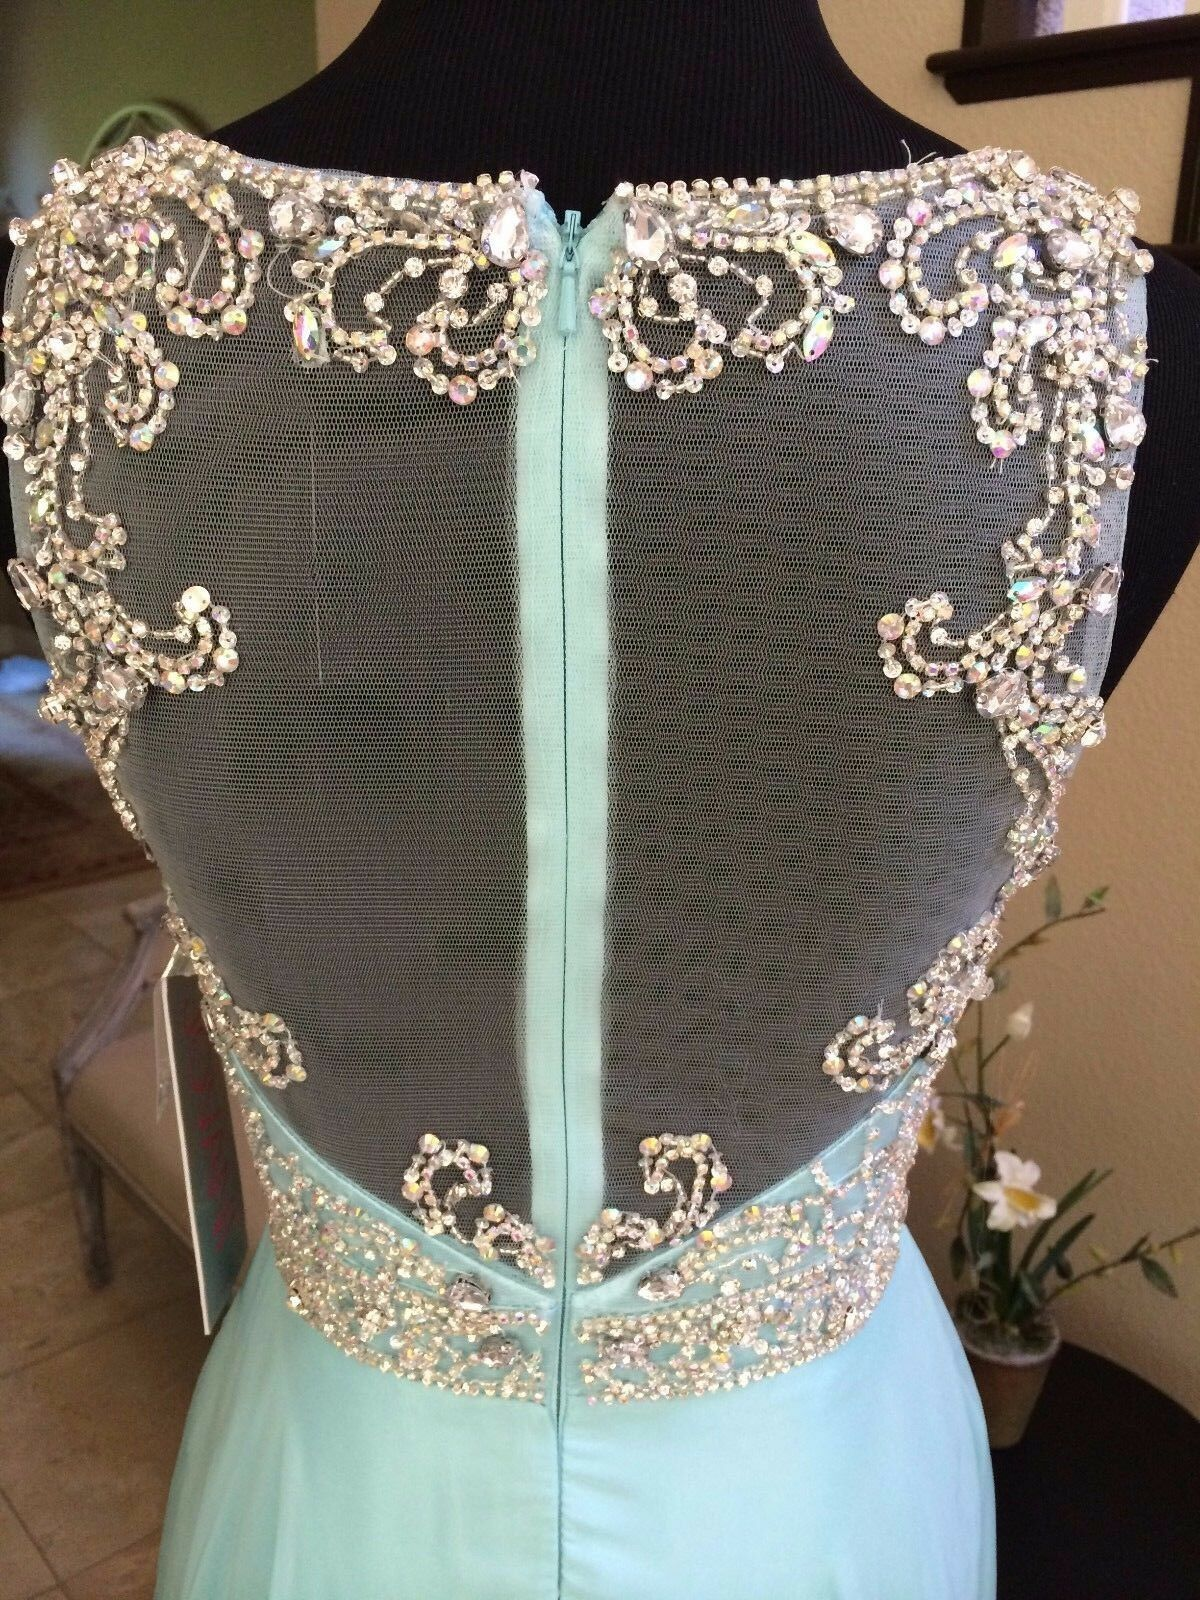 398 NWT MINT JVN BY JOVANI PROM PAGEANT PAGEANT PAGEANT FORMAL DRESS GOWN SIZE 2 7e5354